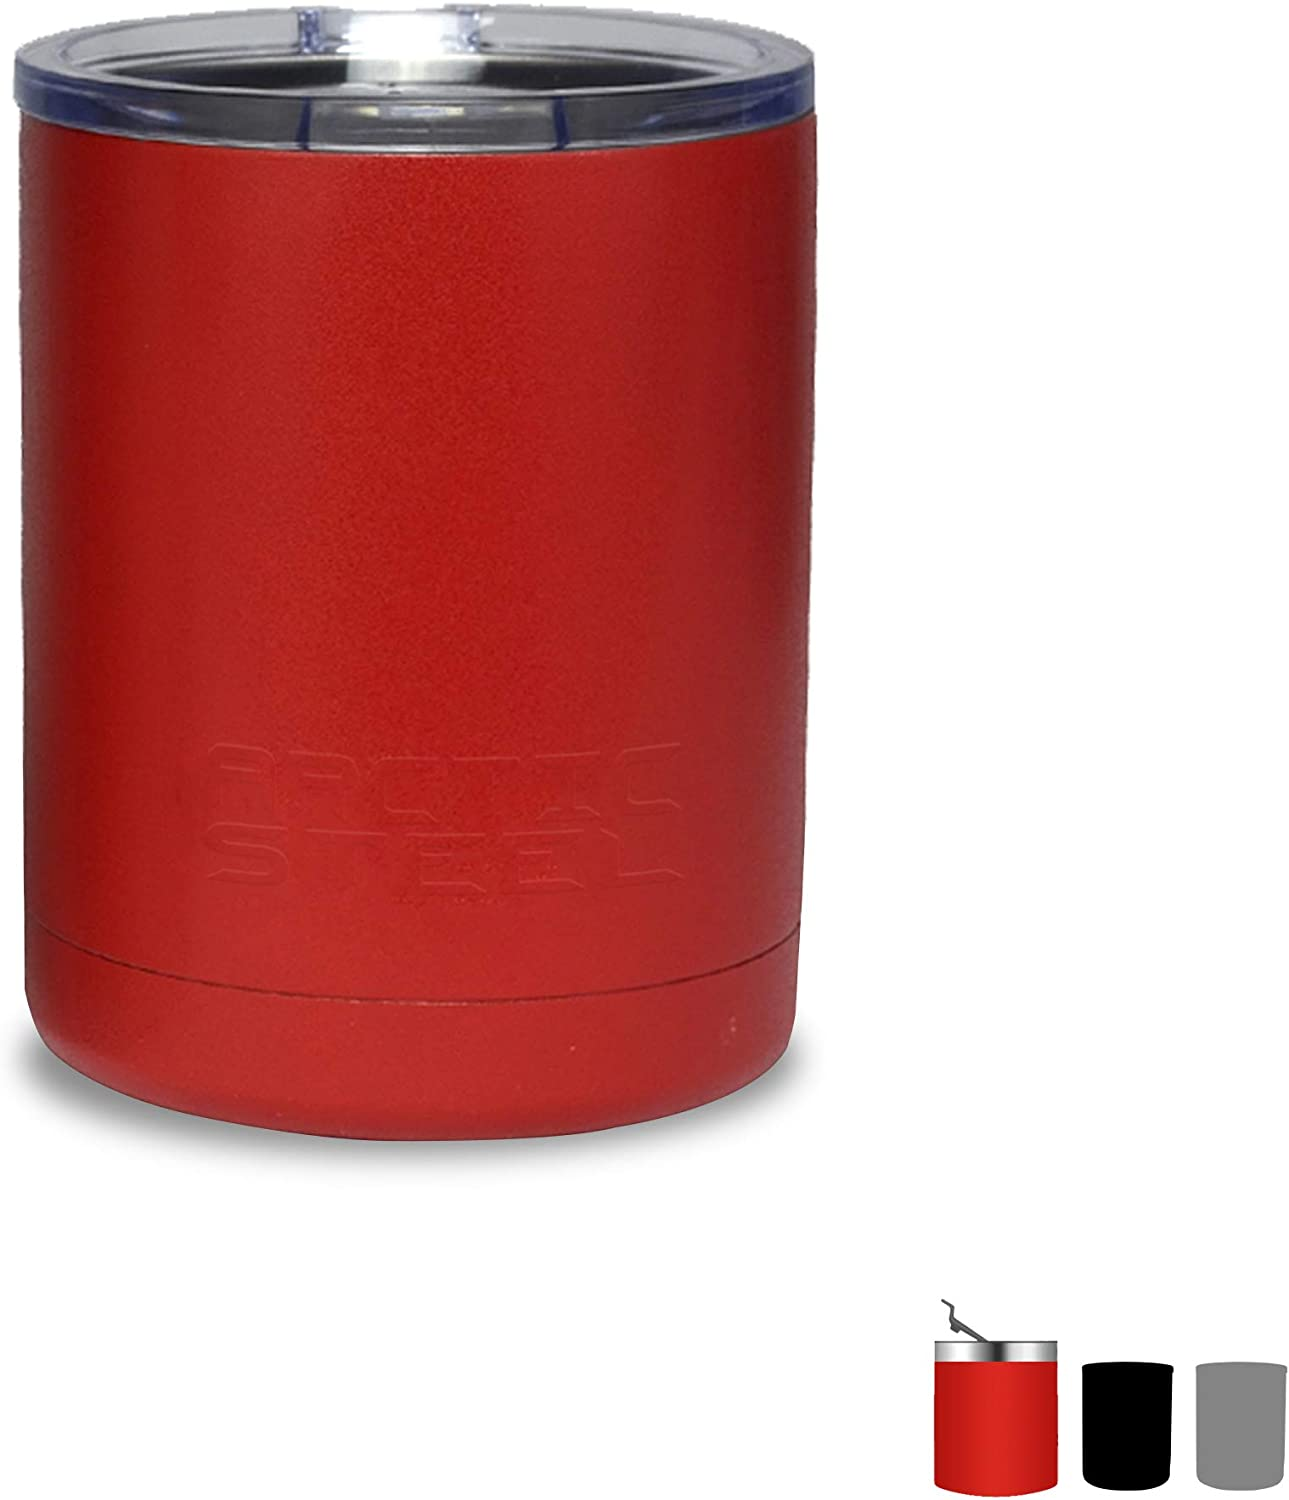 Arctic Steel 10oz Insulated Lowball Tumbler with Lid - Perfect for Coffee, Whiskey, and Cocktails - Durable Stainless Steel, Powder Coated Double Wall Vacuum Mug – Red